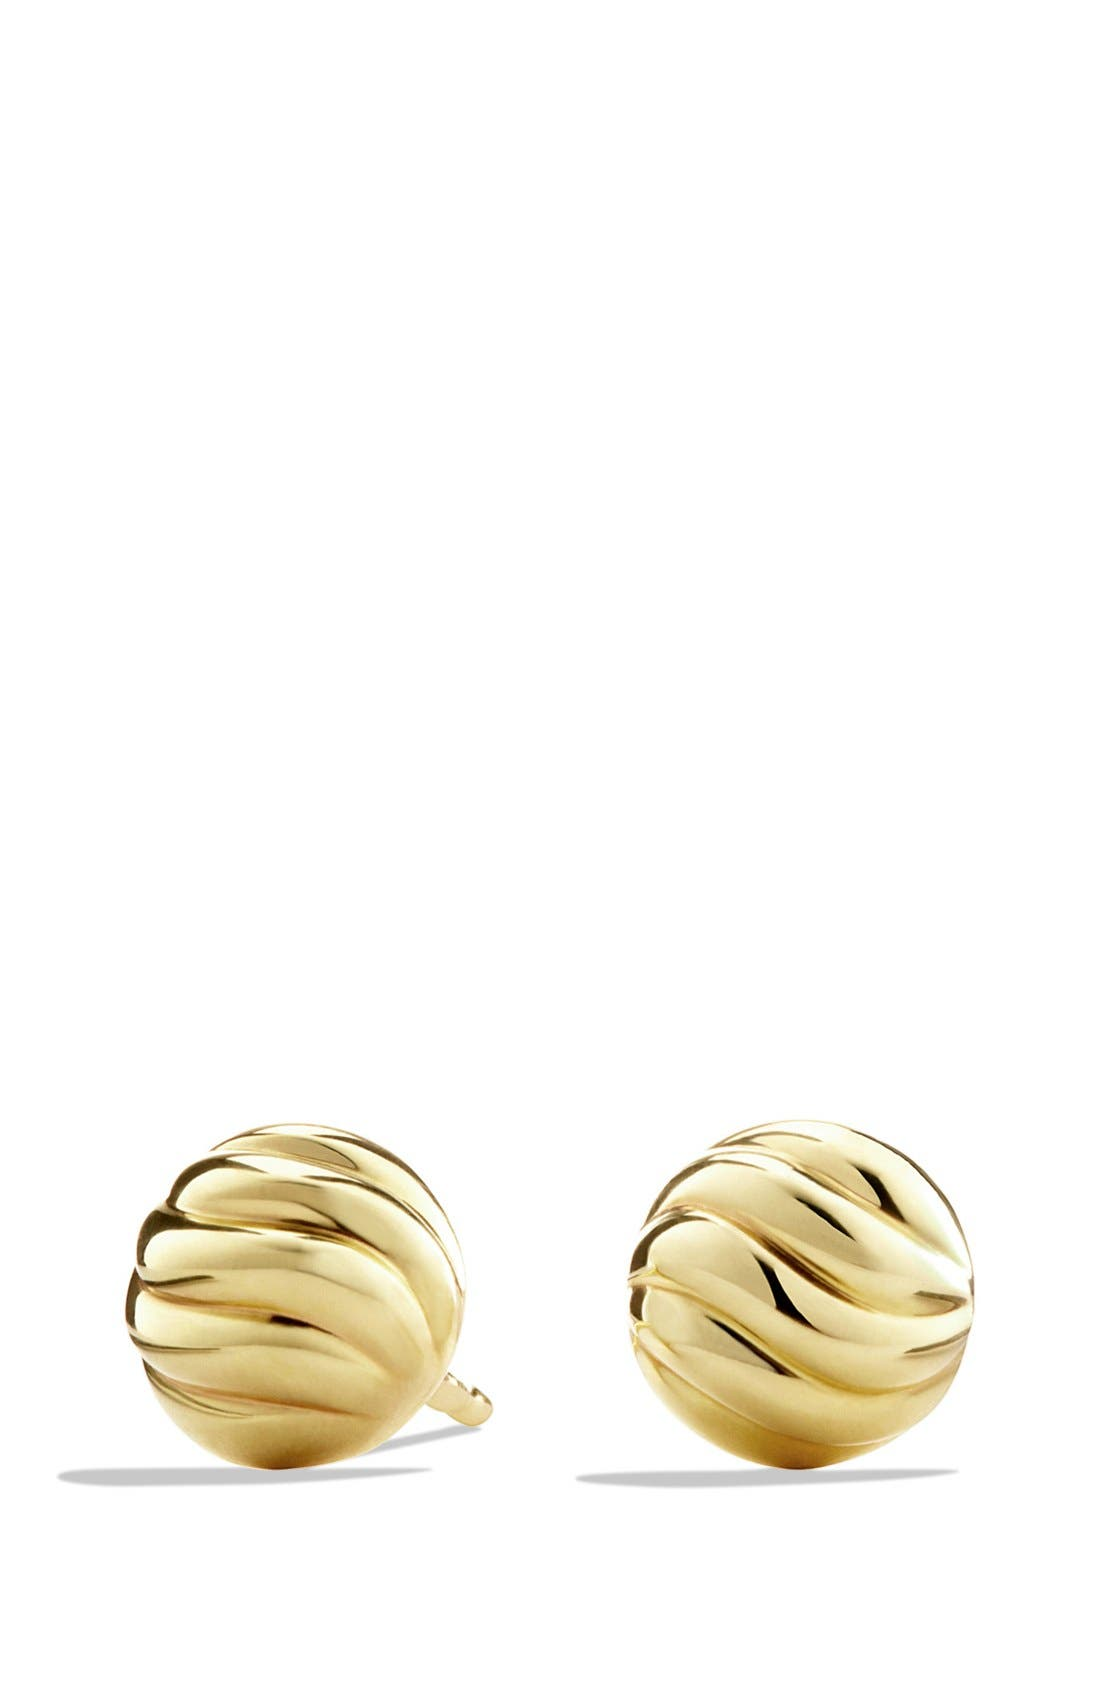 Alternate Image 1 Selected - David Yurman 'Sculpted Cable' Stud Earring in Gold